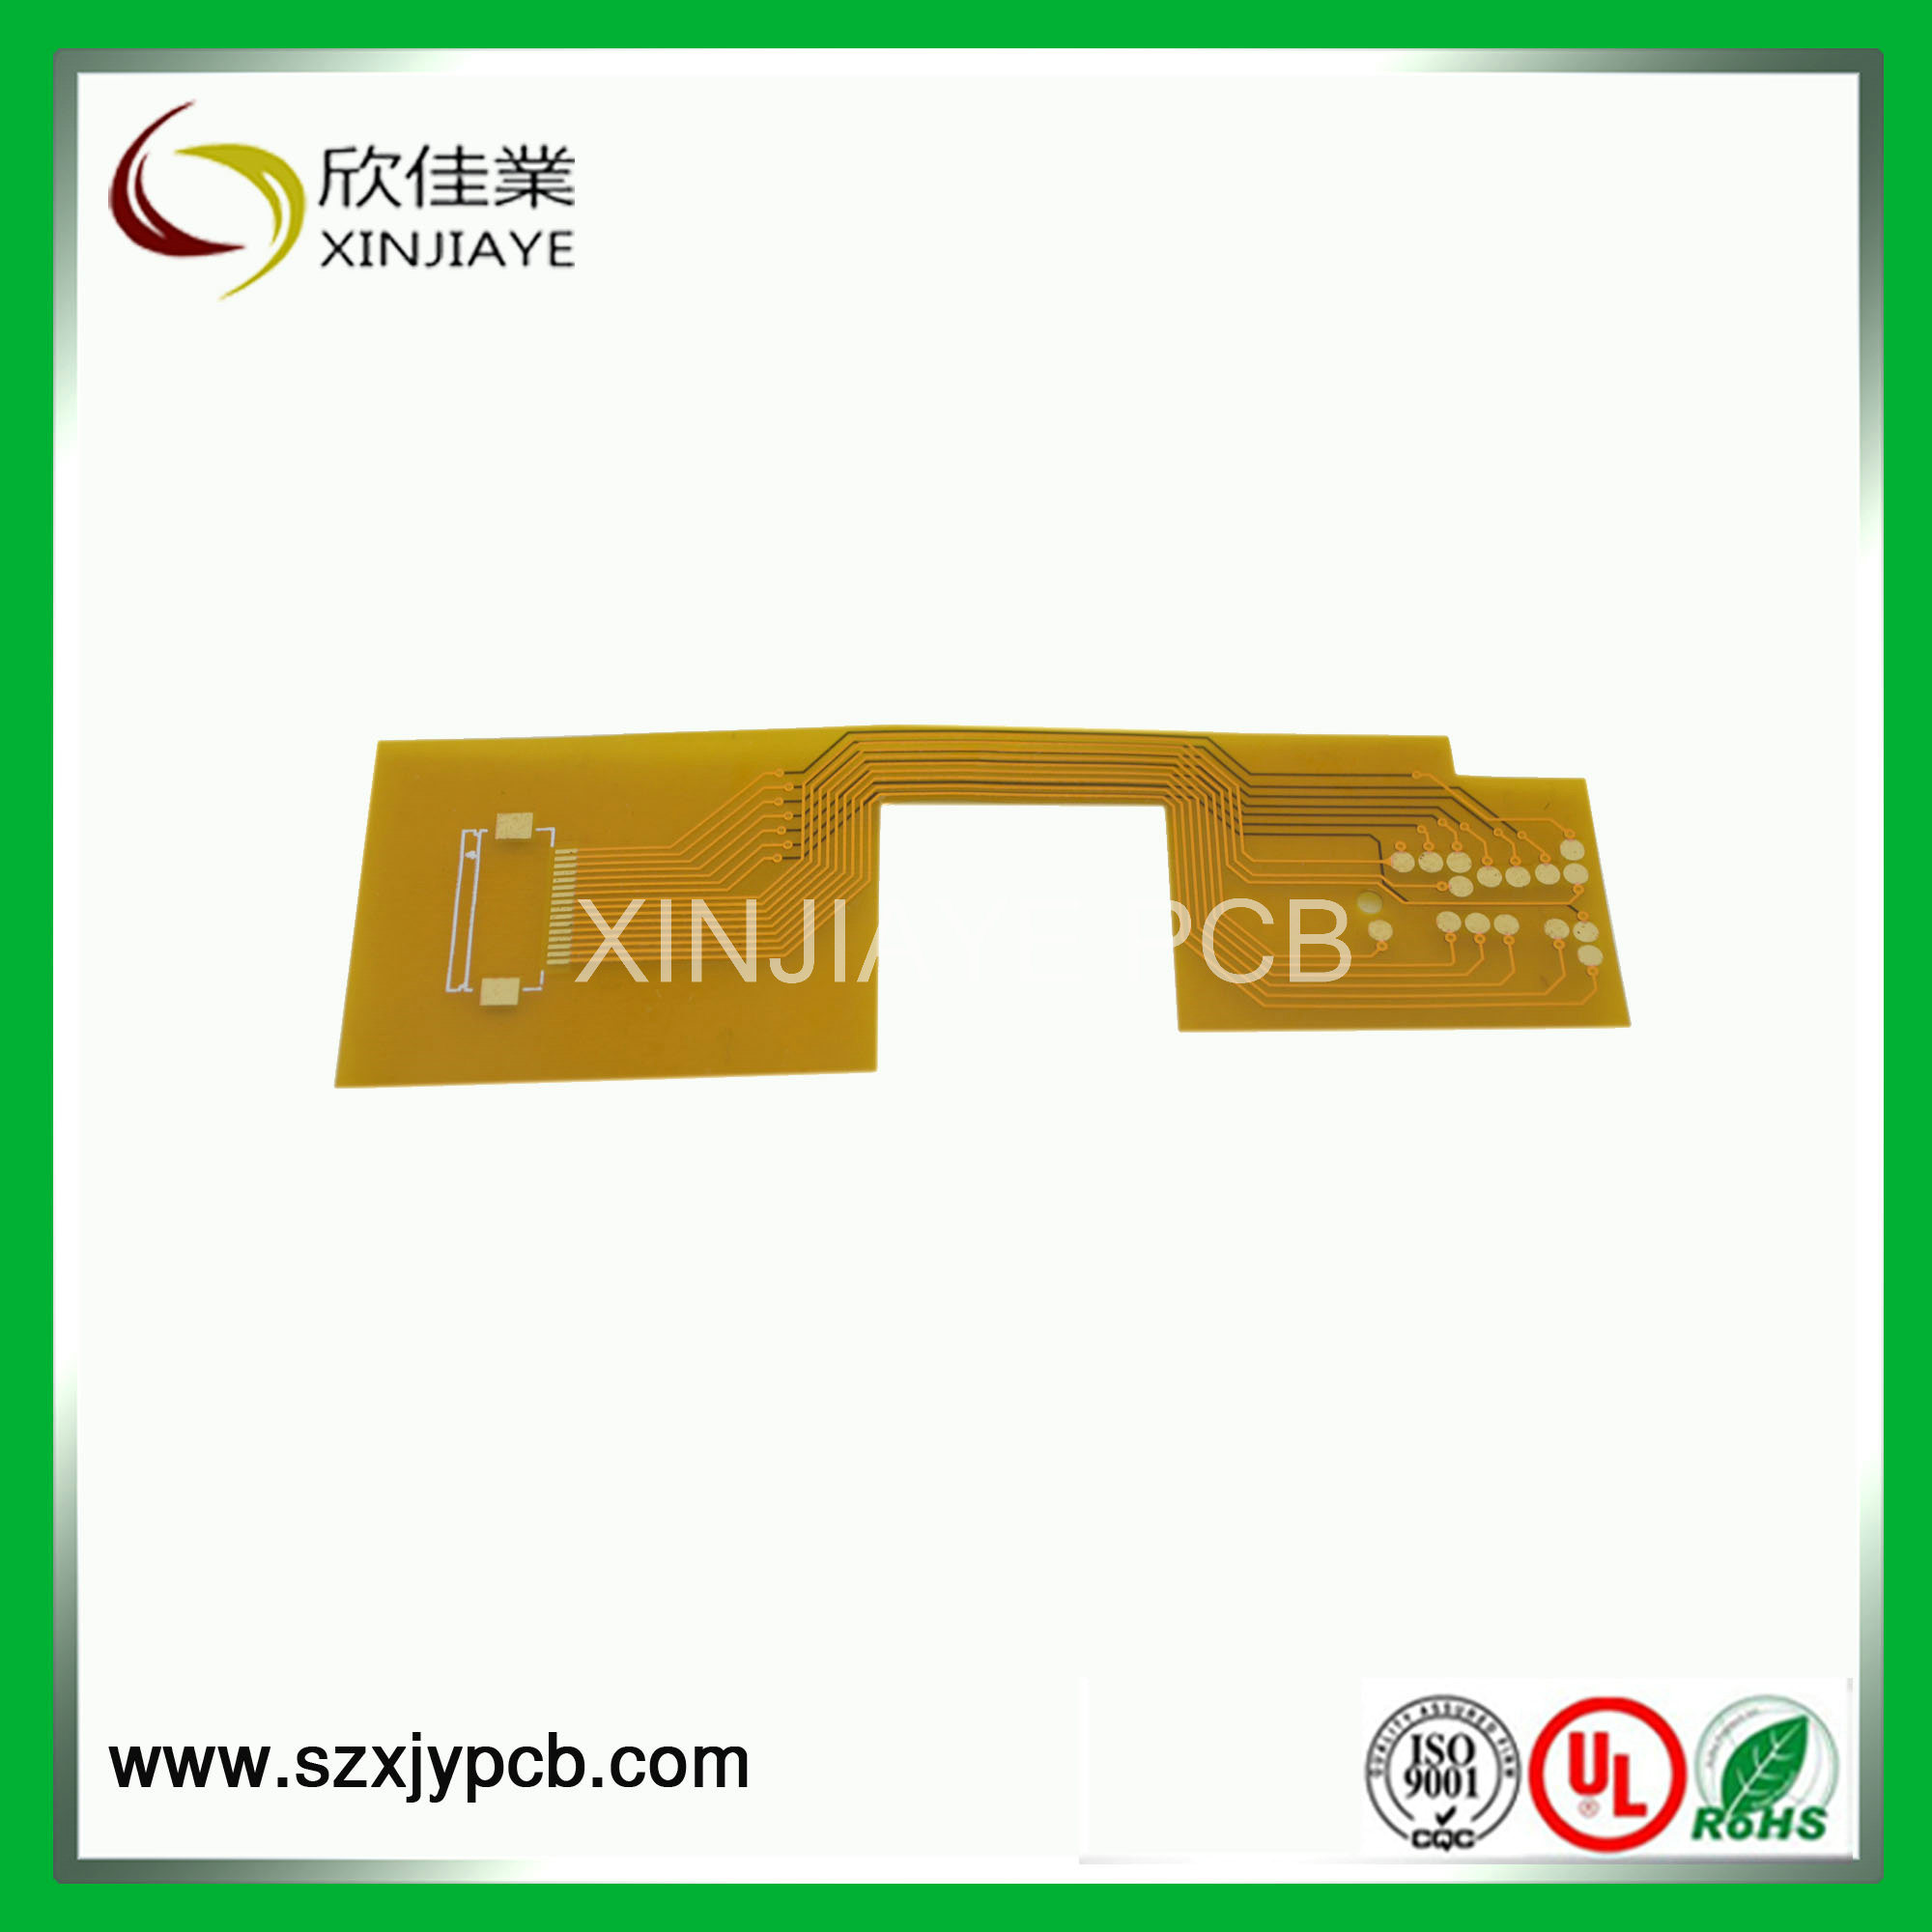 China Xjy Rigid Flex Board Multilayer Printed Circuit Frequency Pcb Layout Services Assembly For Sale